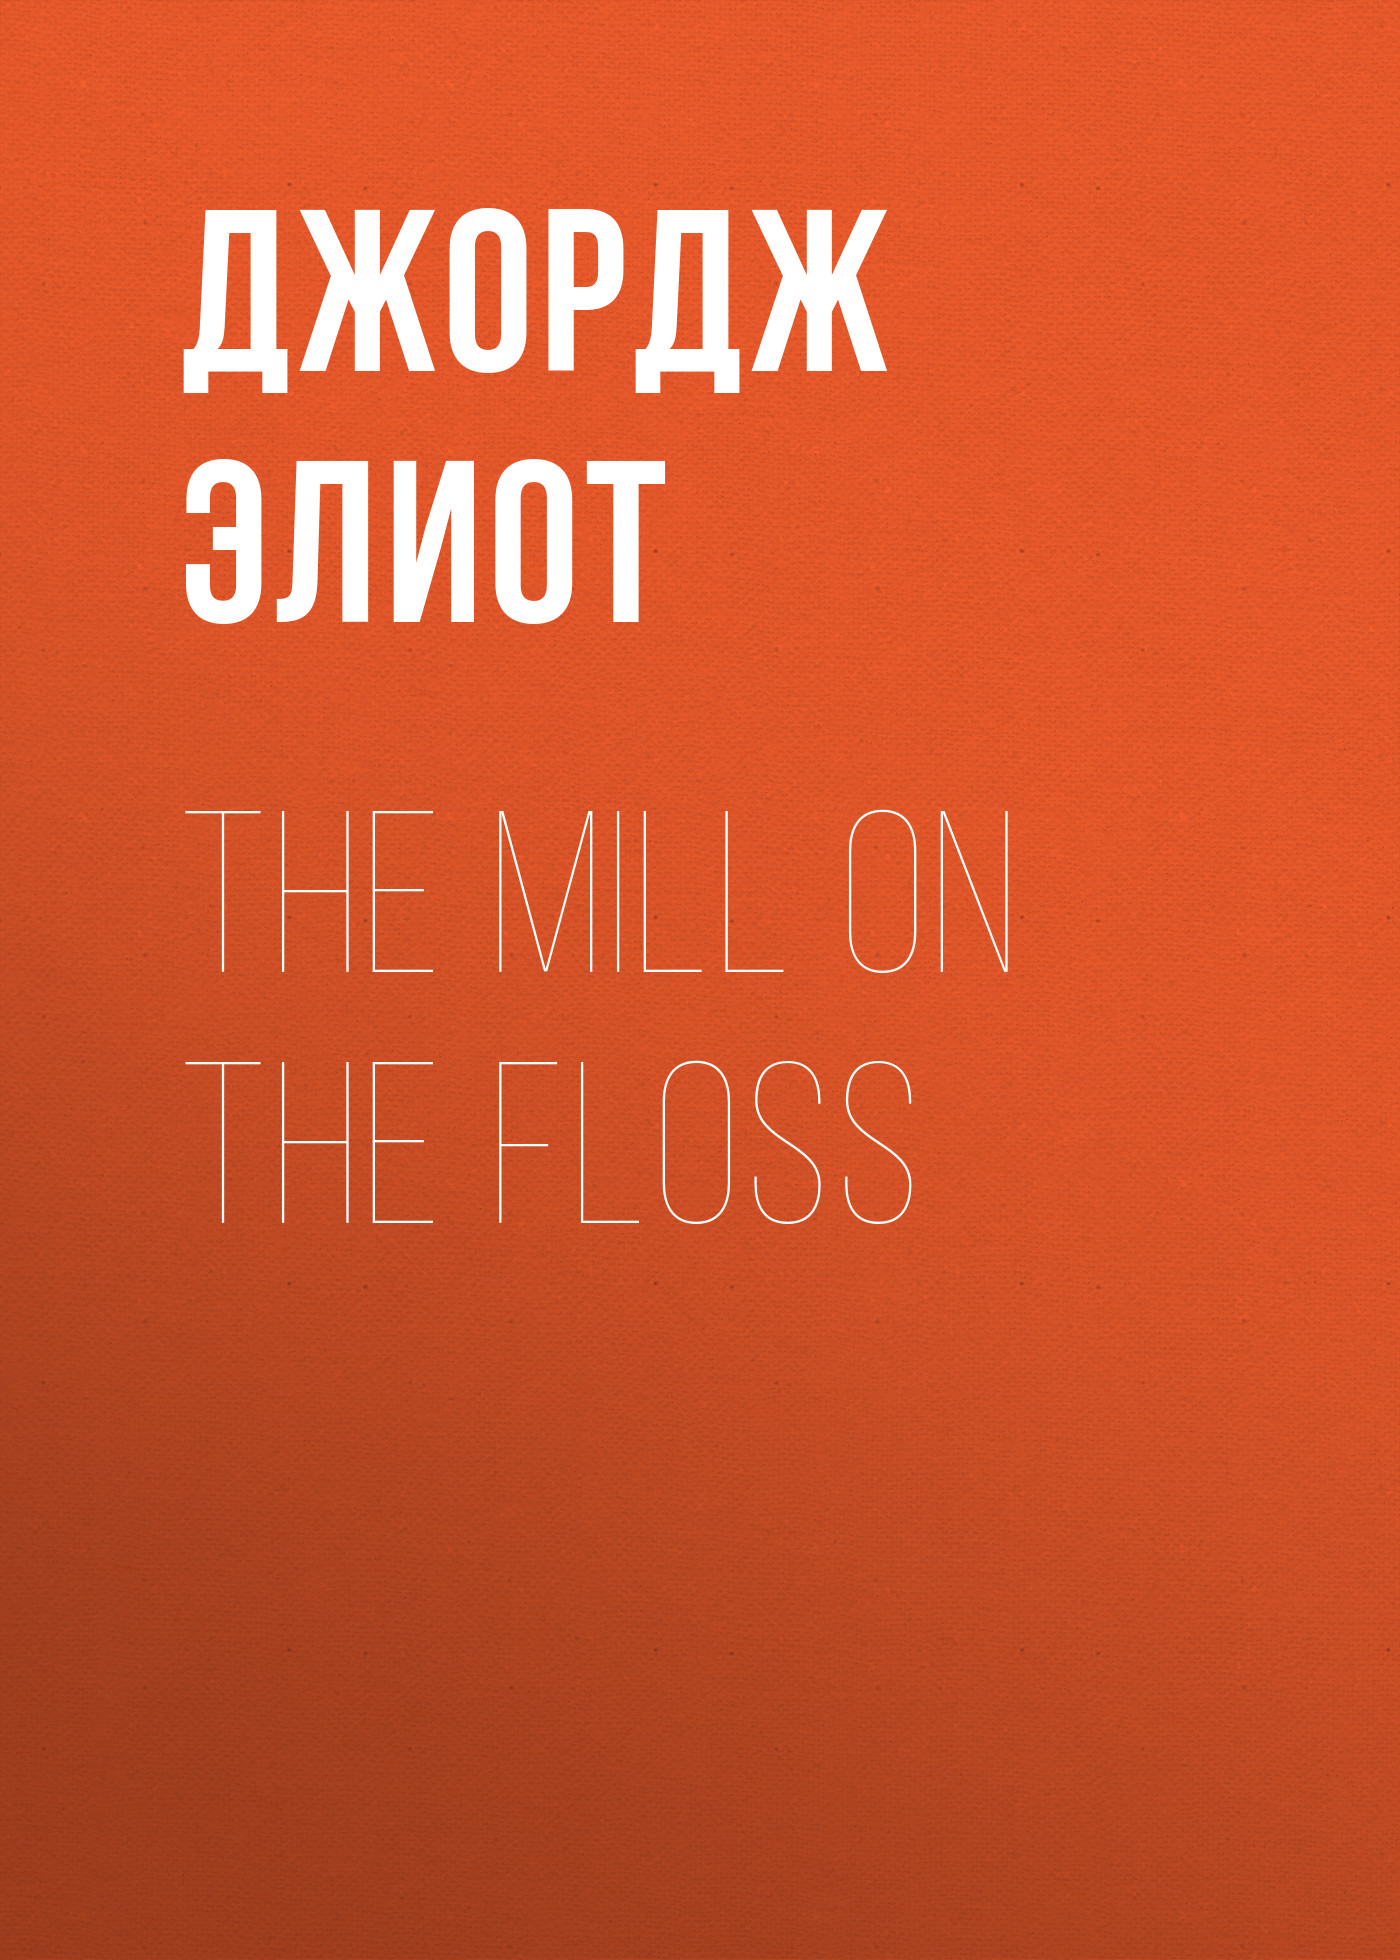 лучшая цена Джордж Элиот The Mill on the Floss